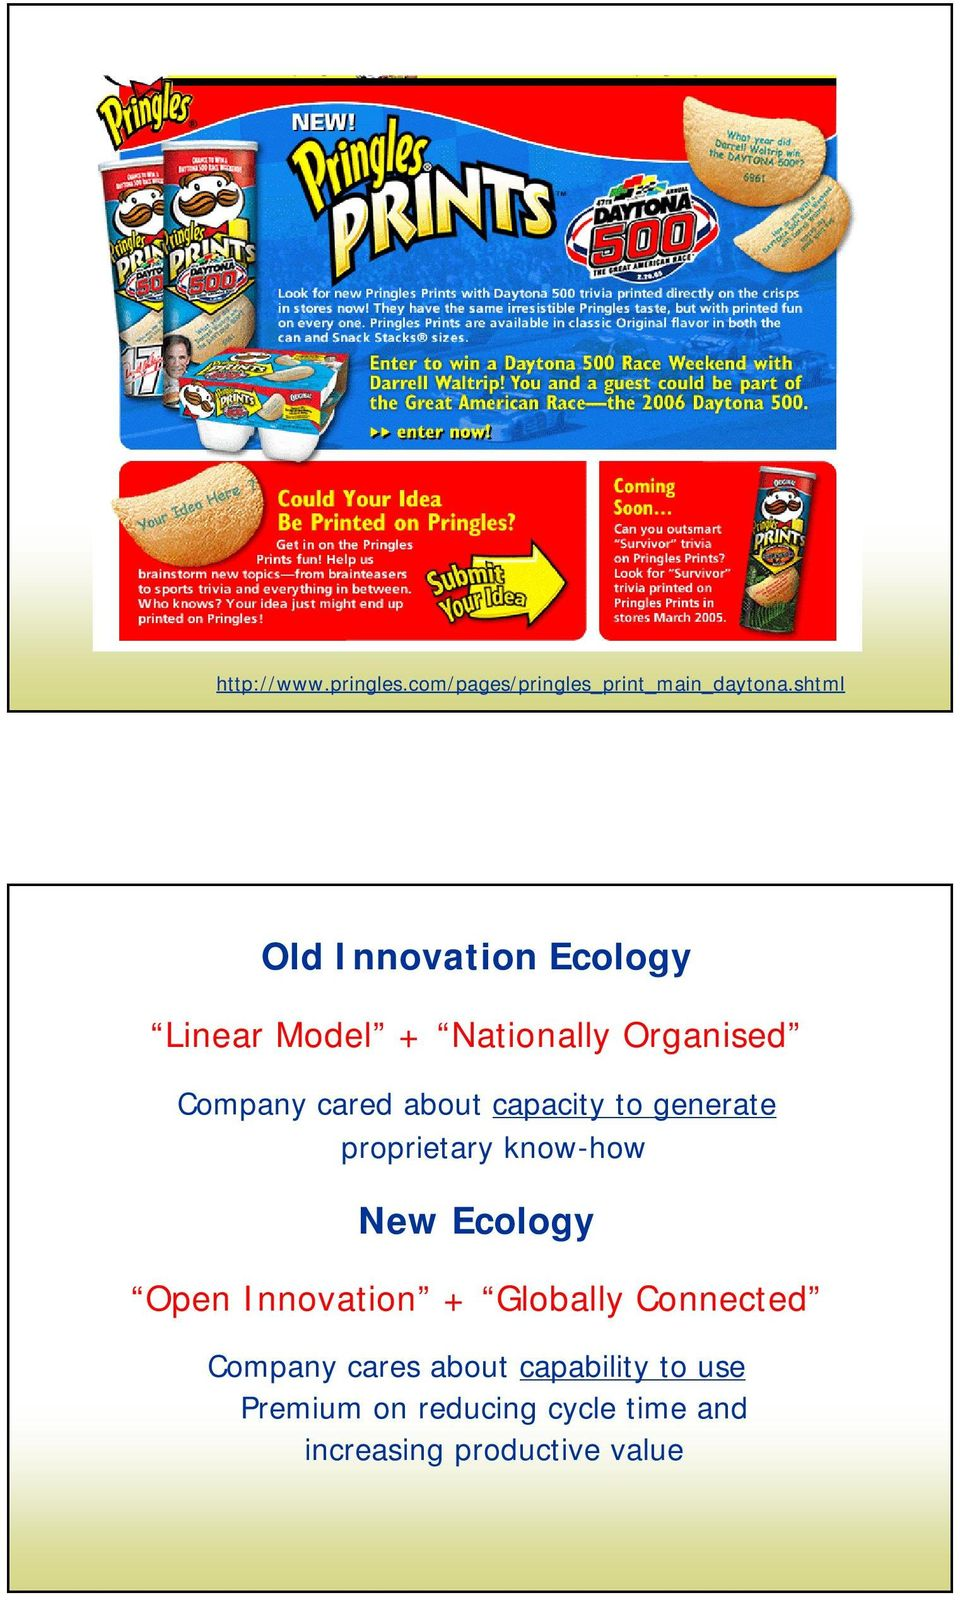 about capacity to generate proprietary know-how New Ecology Open Innovation +